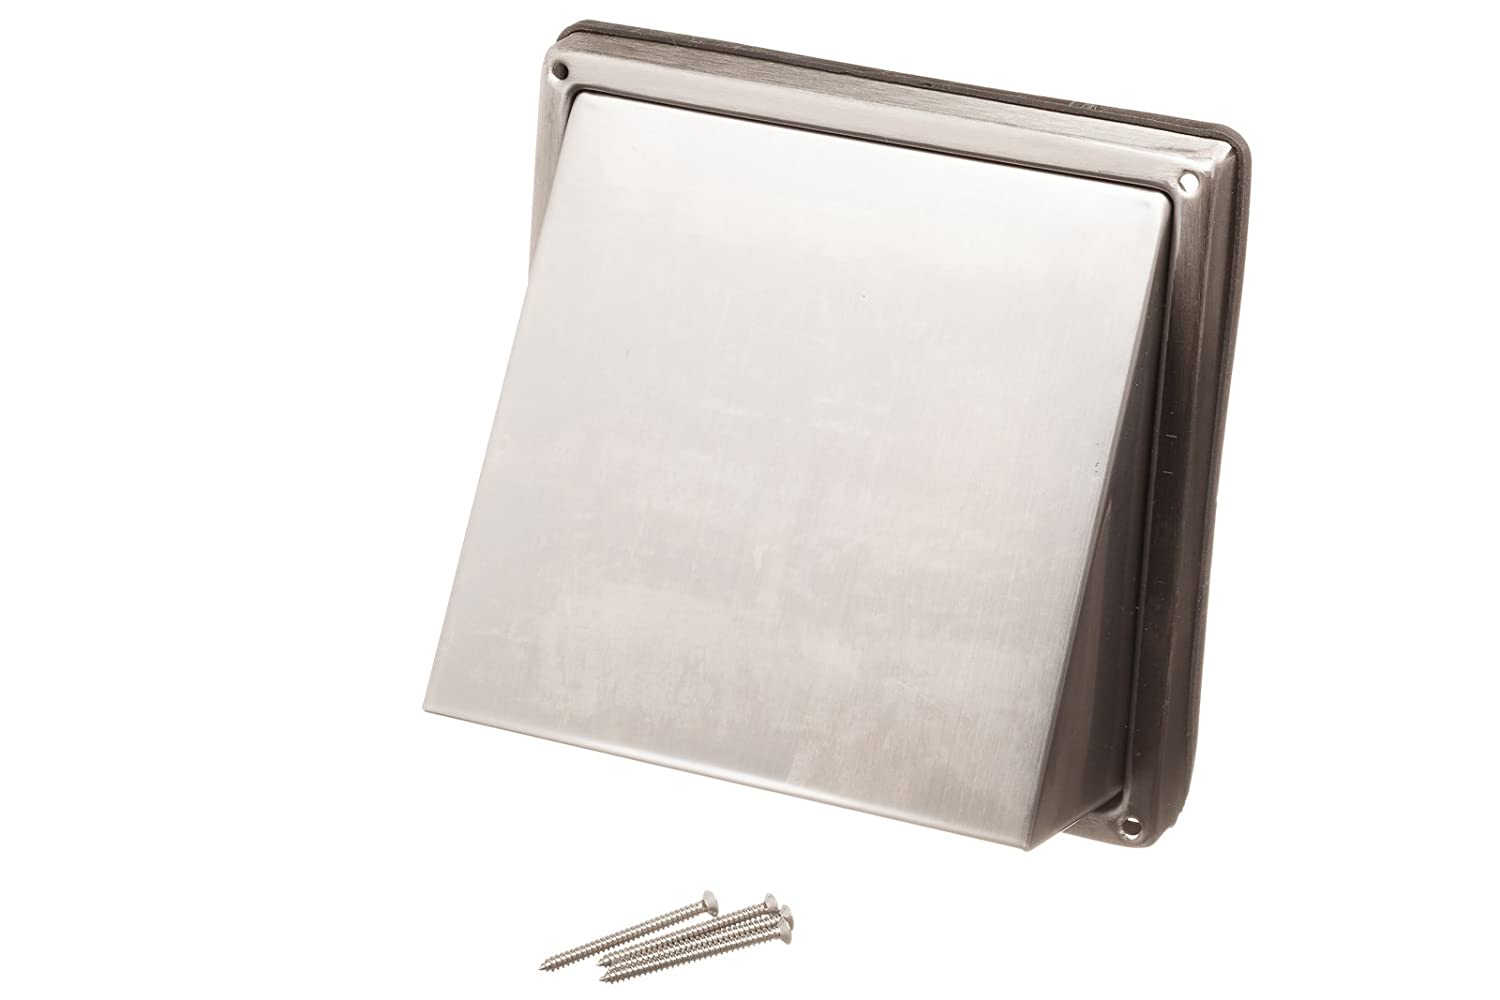 NaplesUK Stainless Steel Cowled External Extractor Wall Vent Outlet with Cushioned Non Return Flap Rear Spigot To Fit (150mm, 6') Ducting 6) Ducting Verplas